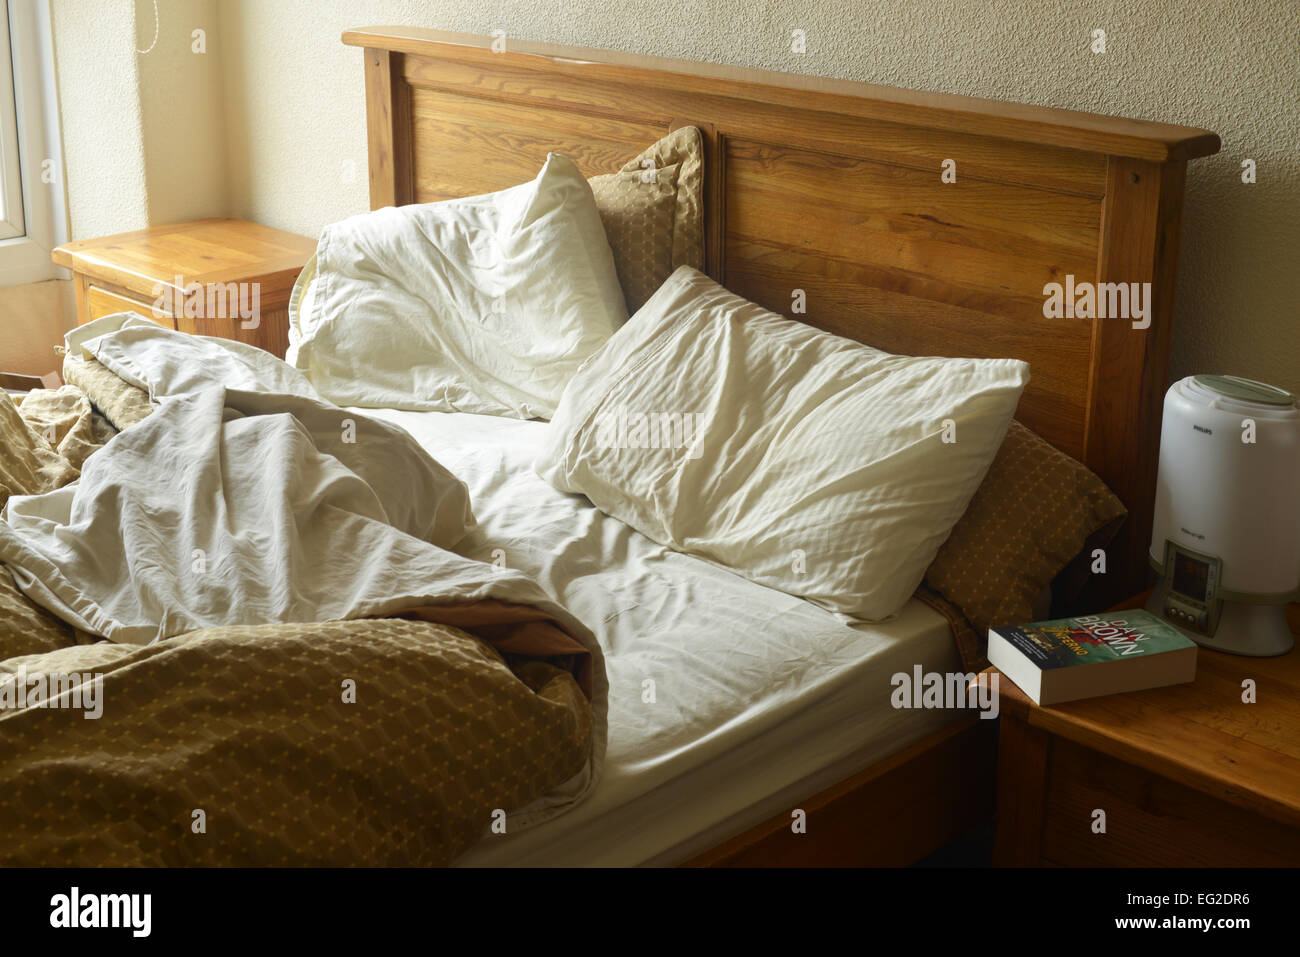 An unmade double bed. - Stock Image